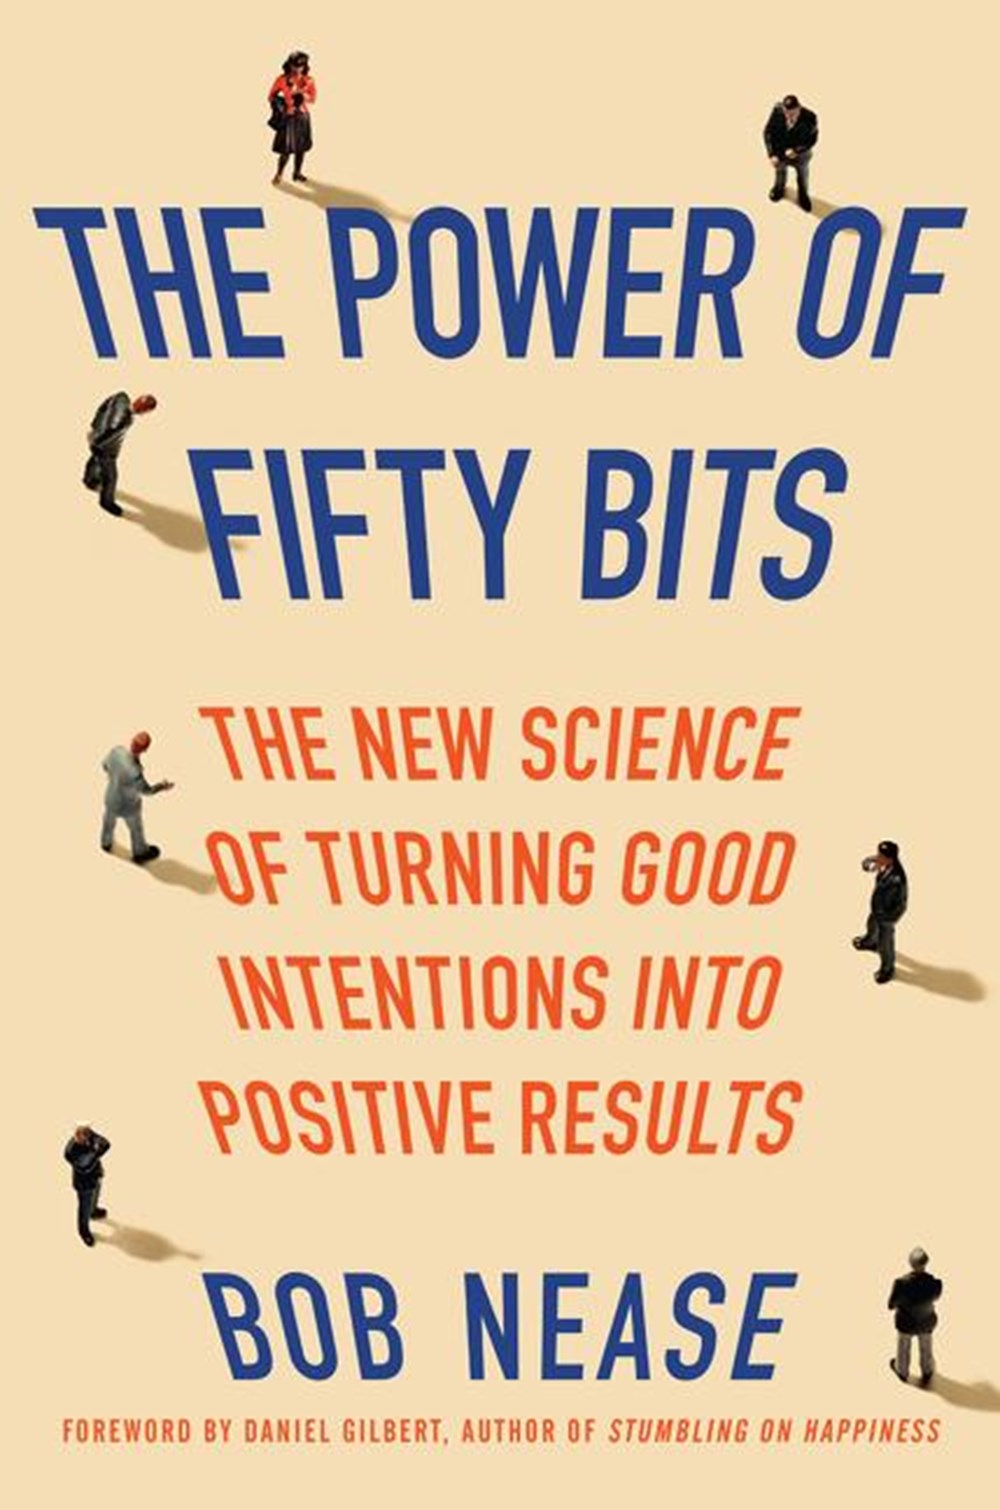 Power of Fifty Bits The New Science of Turning Good Intentions Into Positive Results